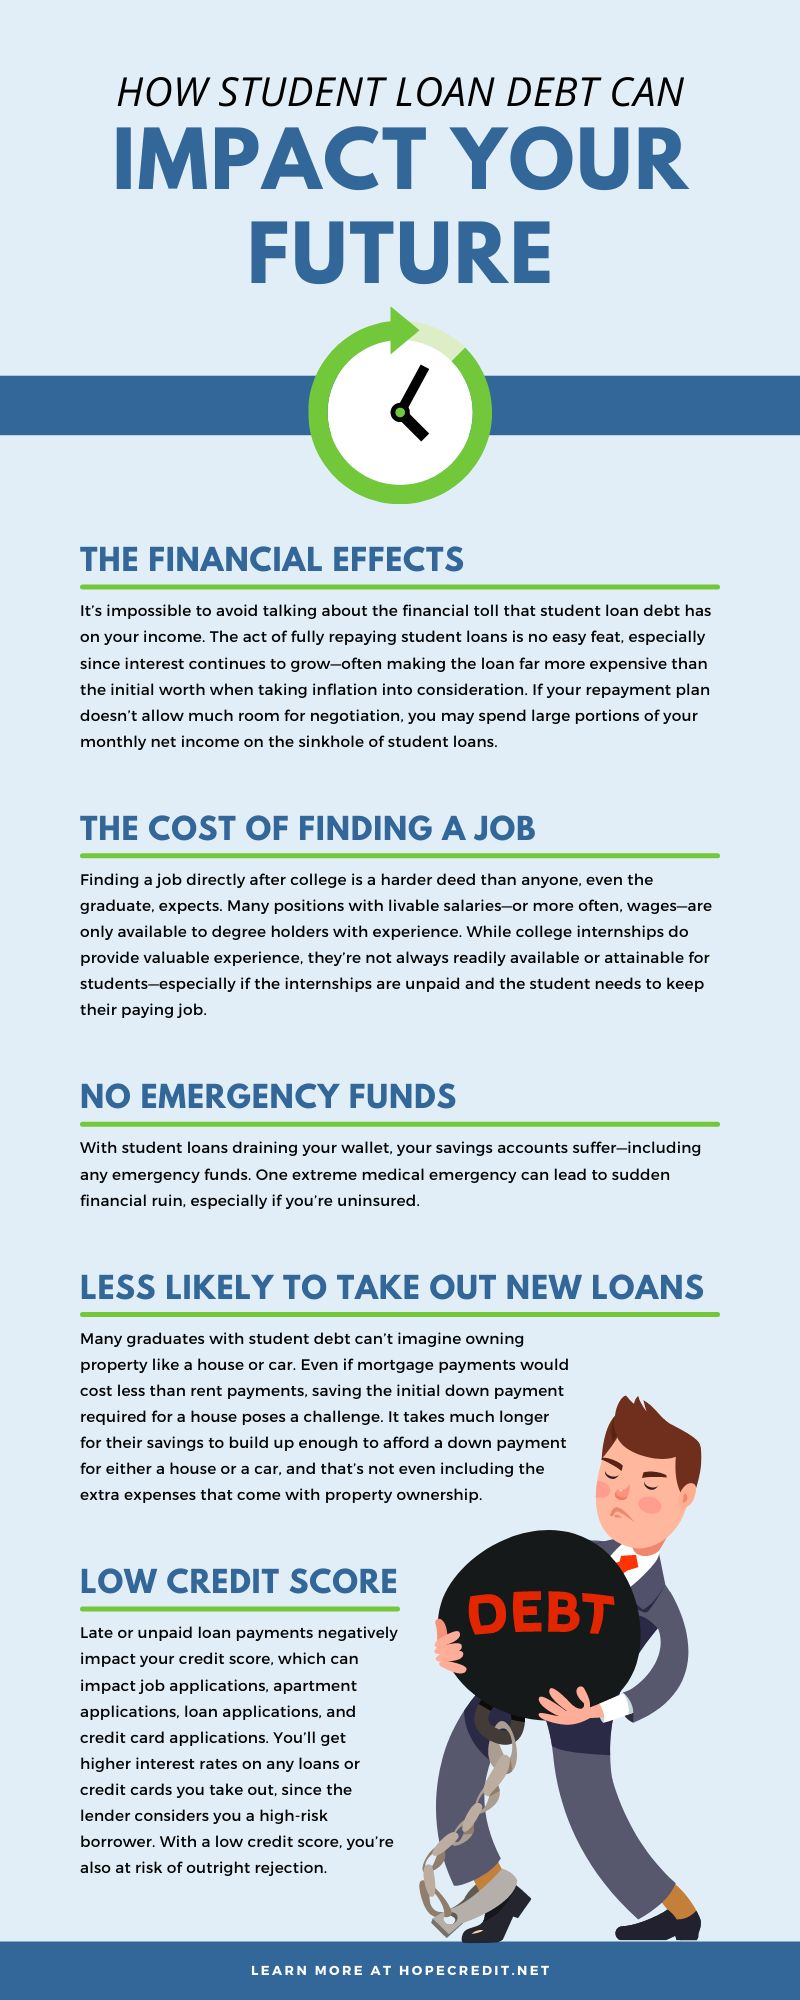 How Student Loan Debt Can Impact Your Future